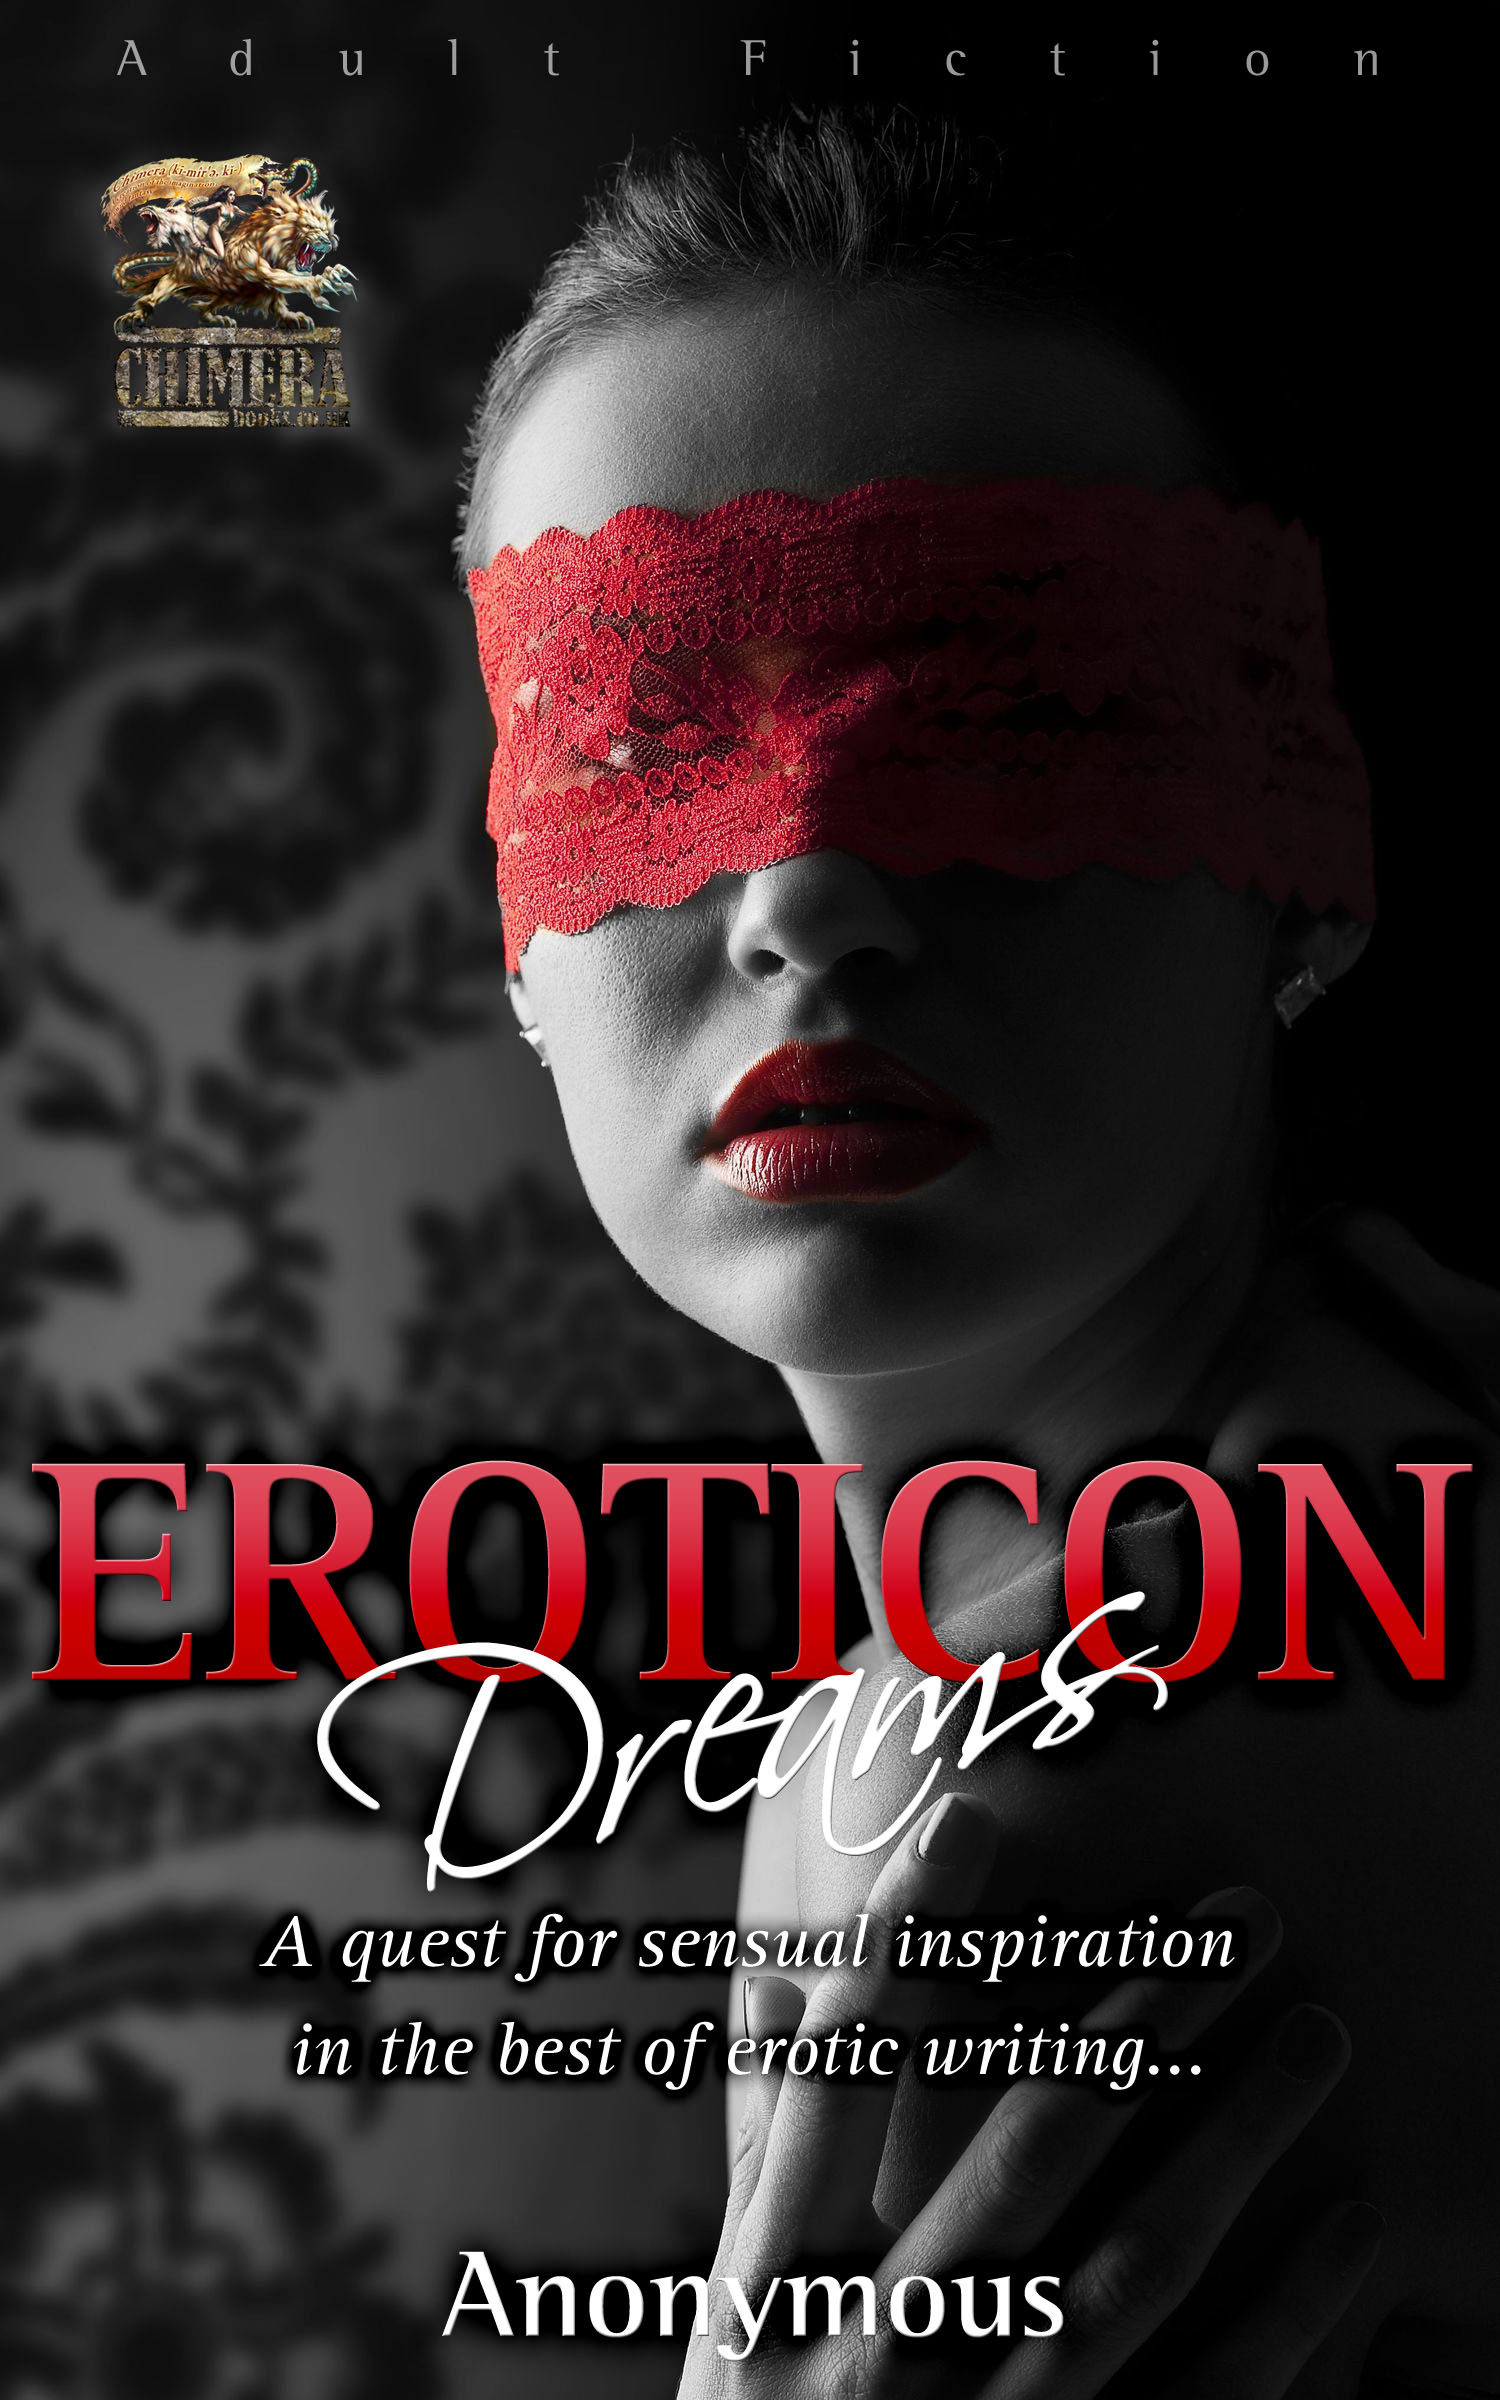 Eroticon Dreams: A quest for sensual inspiration in the best of erotic writing